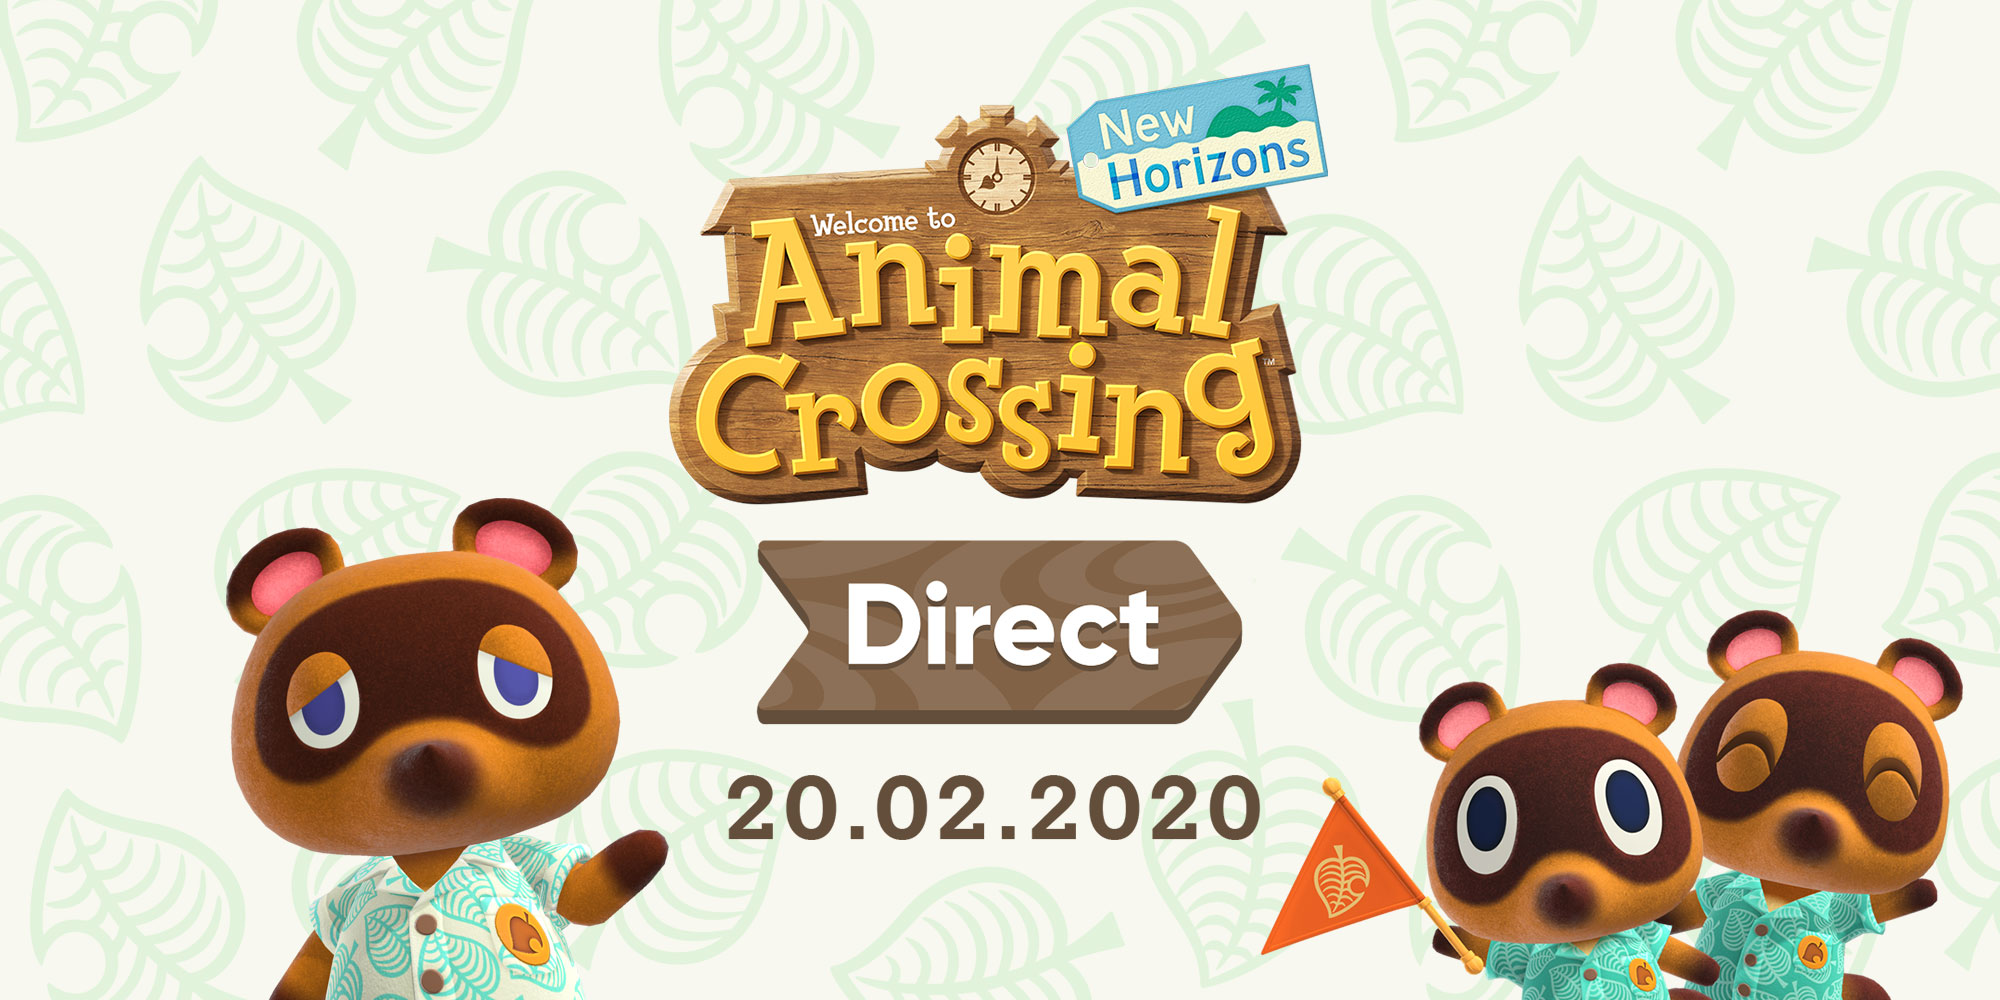 Ein neues Animal Crossing: New Horizons Direct erscheint am 20. Februar!